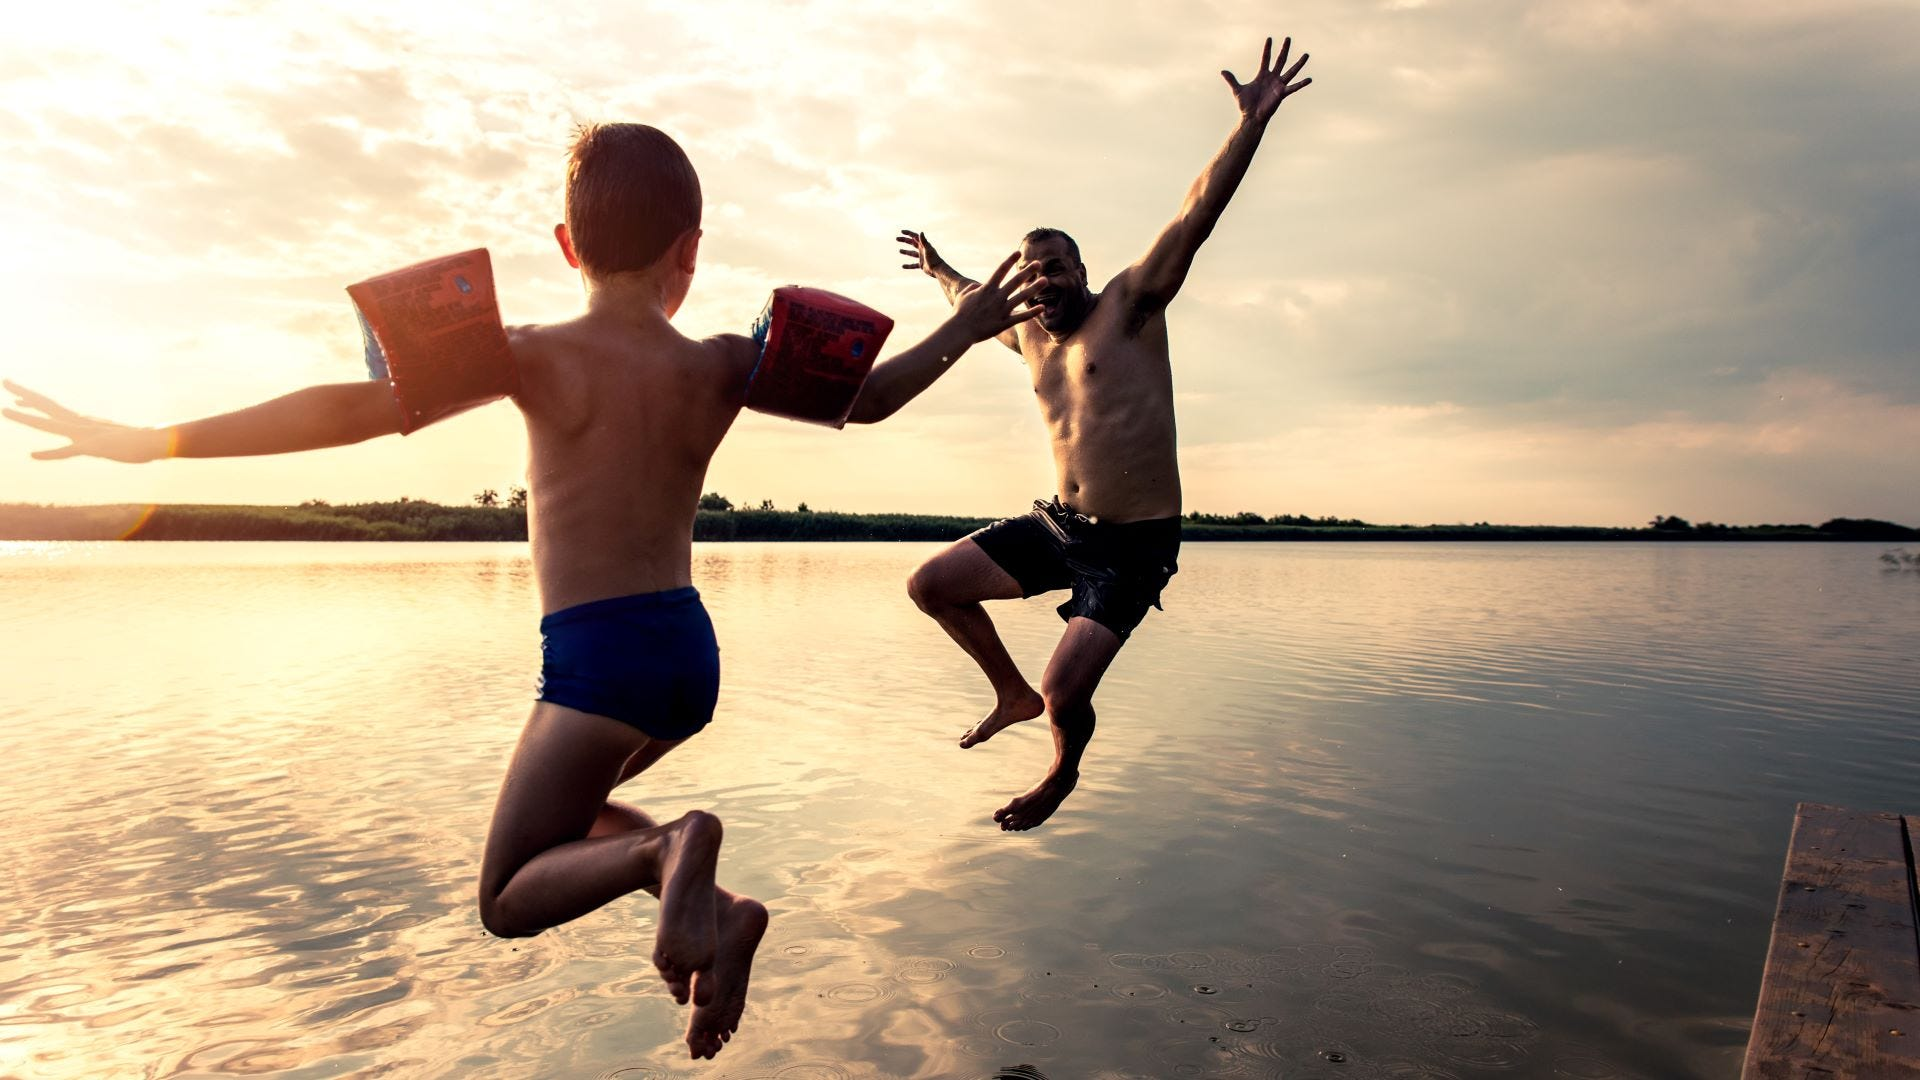 A father and son jumping in a lake.